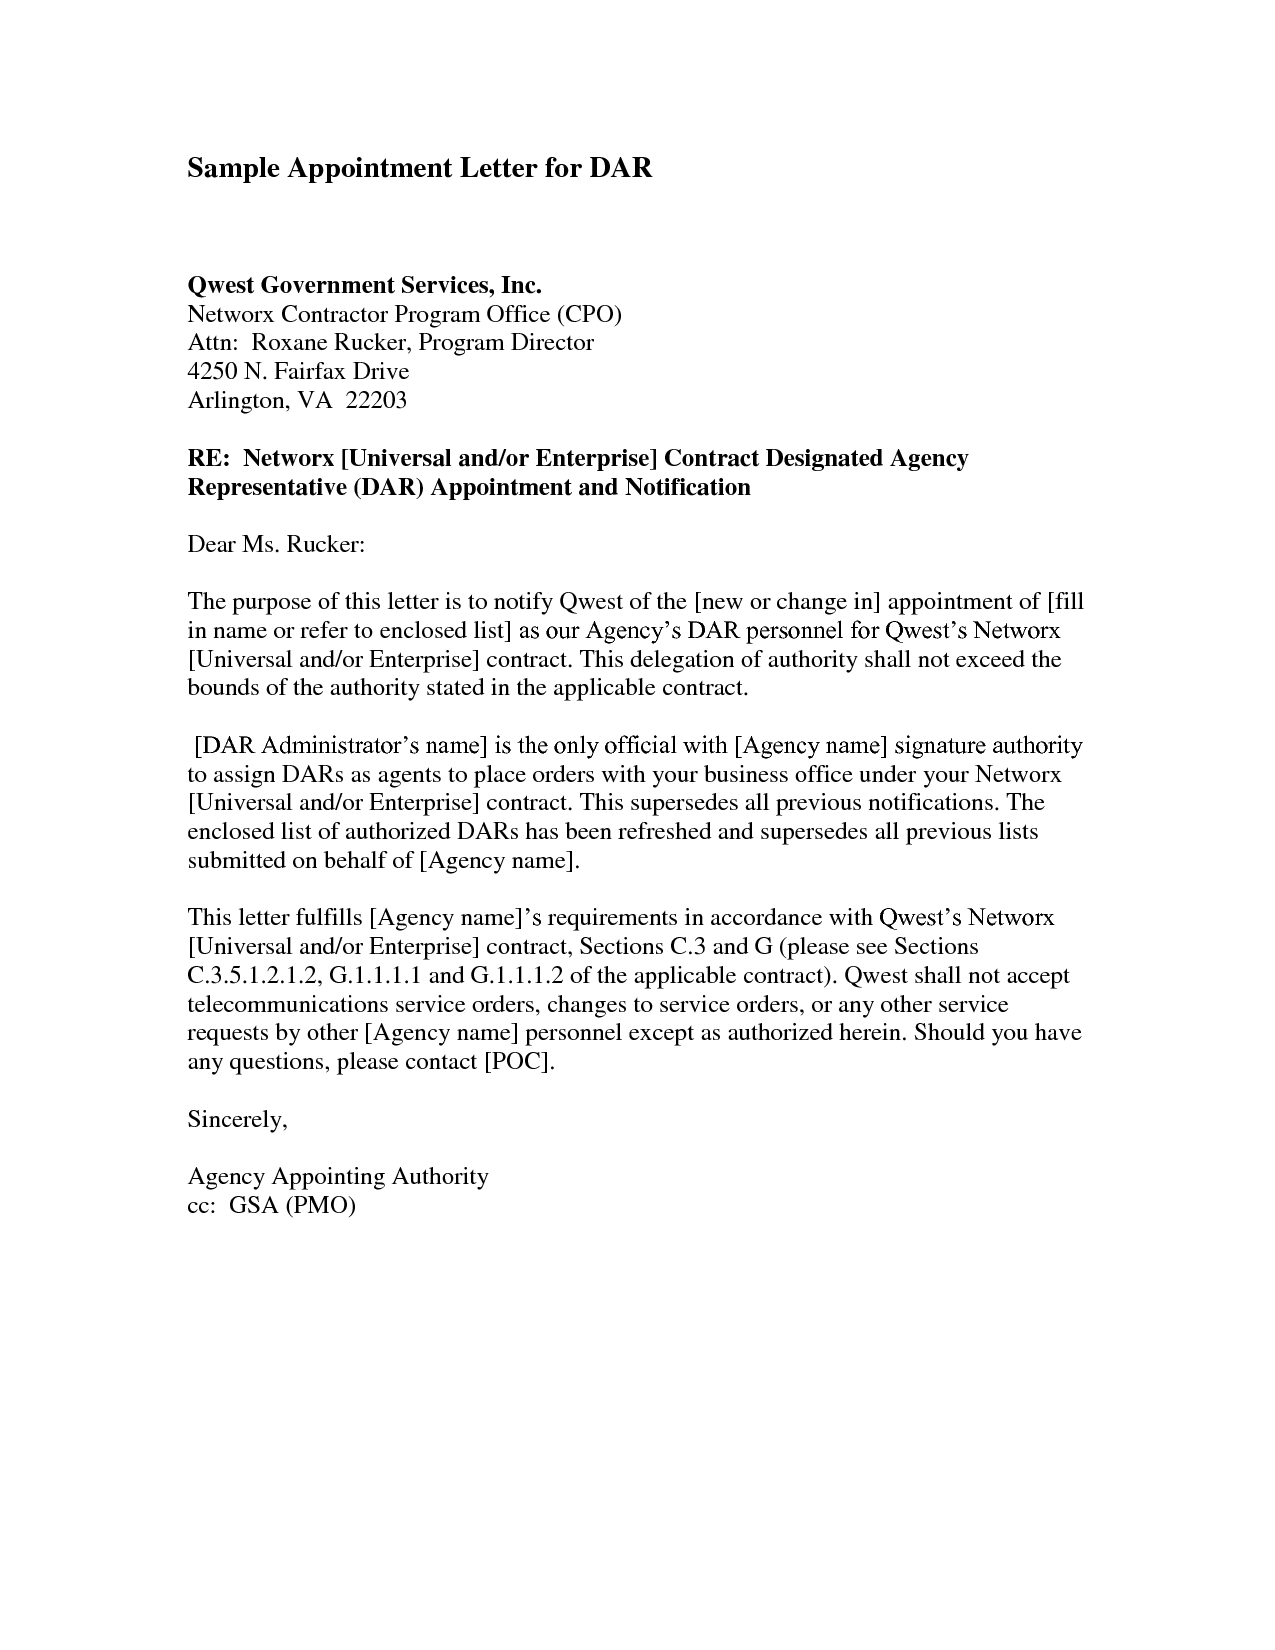 Trustee Appointment Letter  directortrustee is appointed or elected the chair should send a